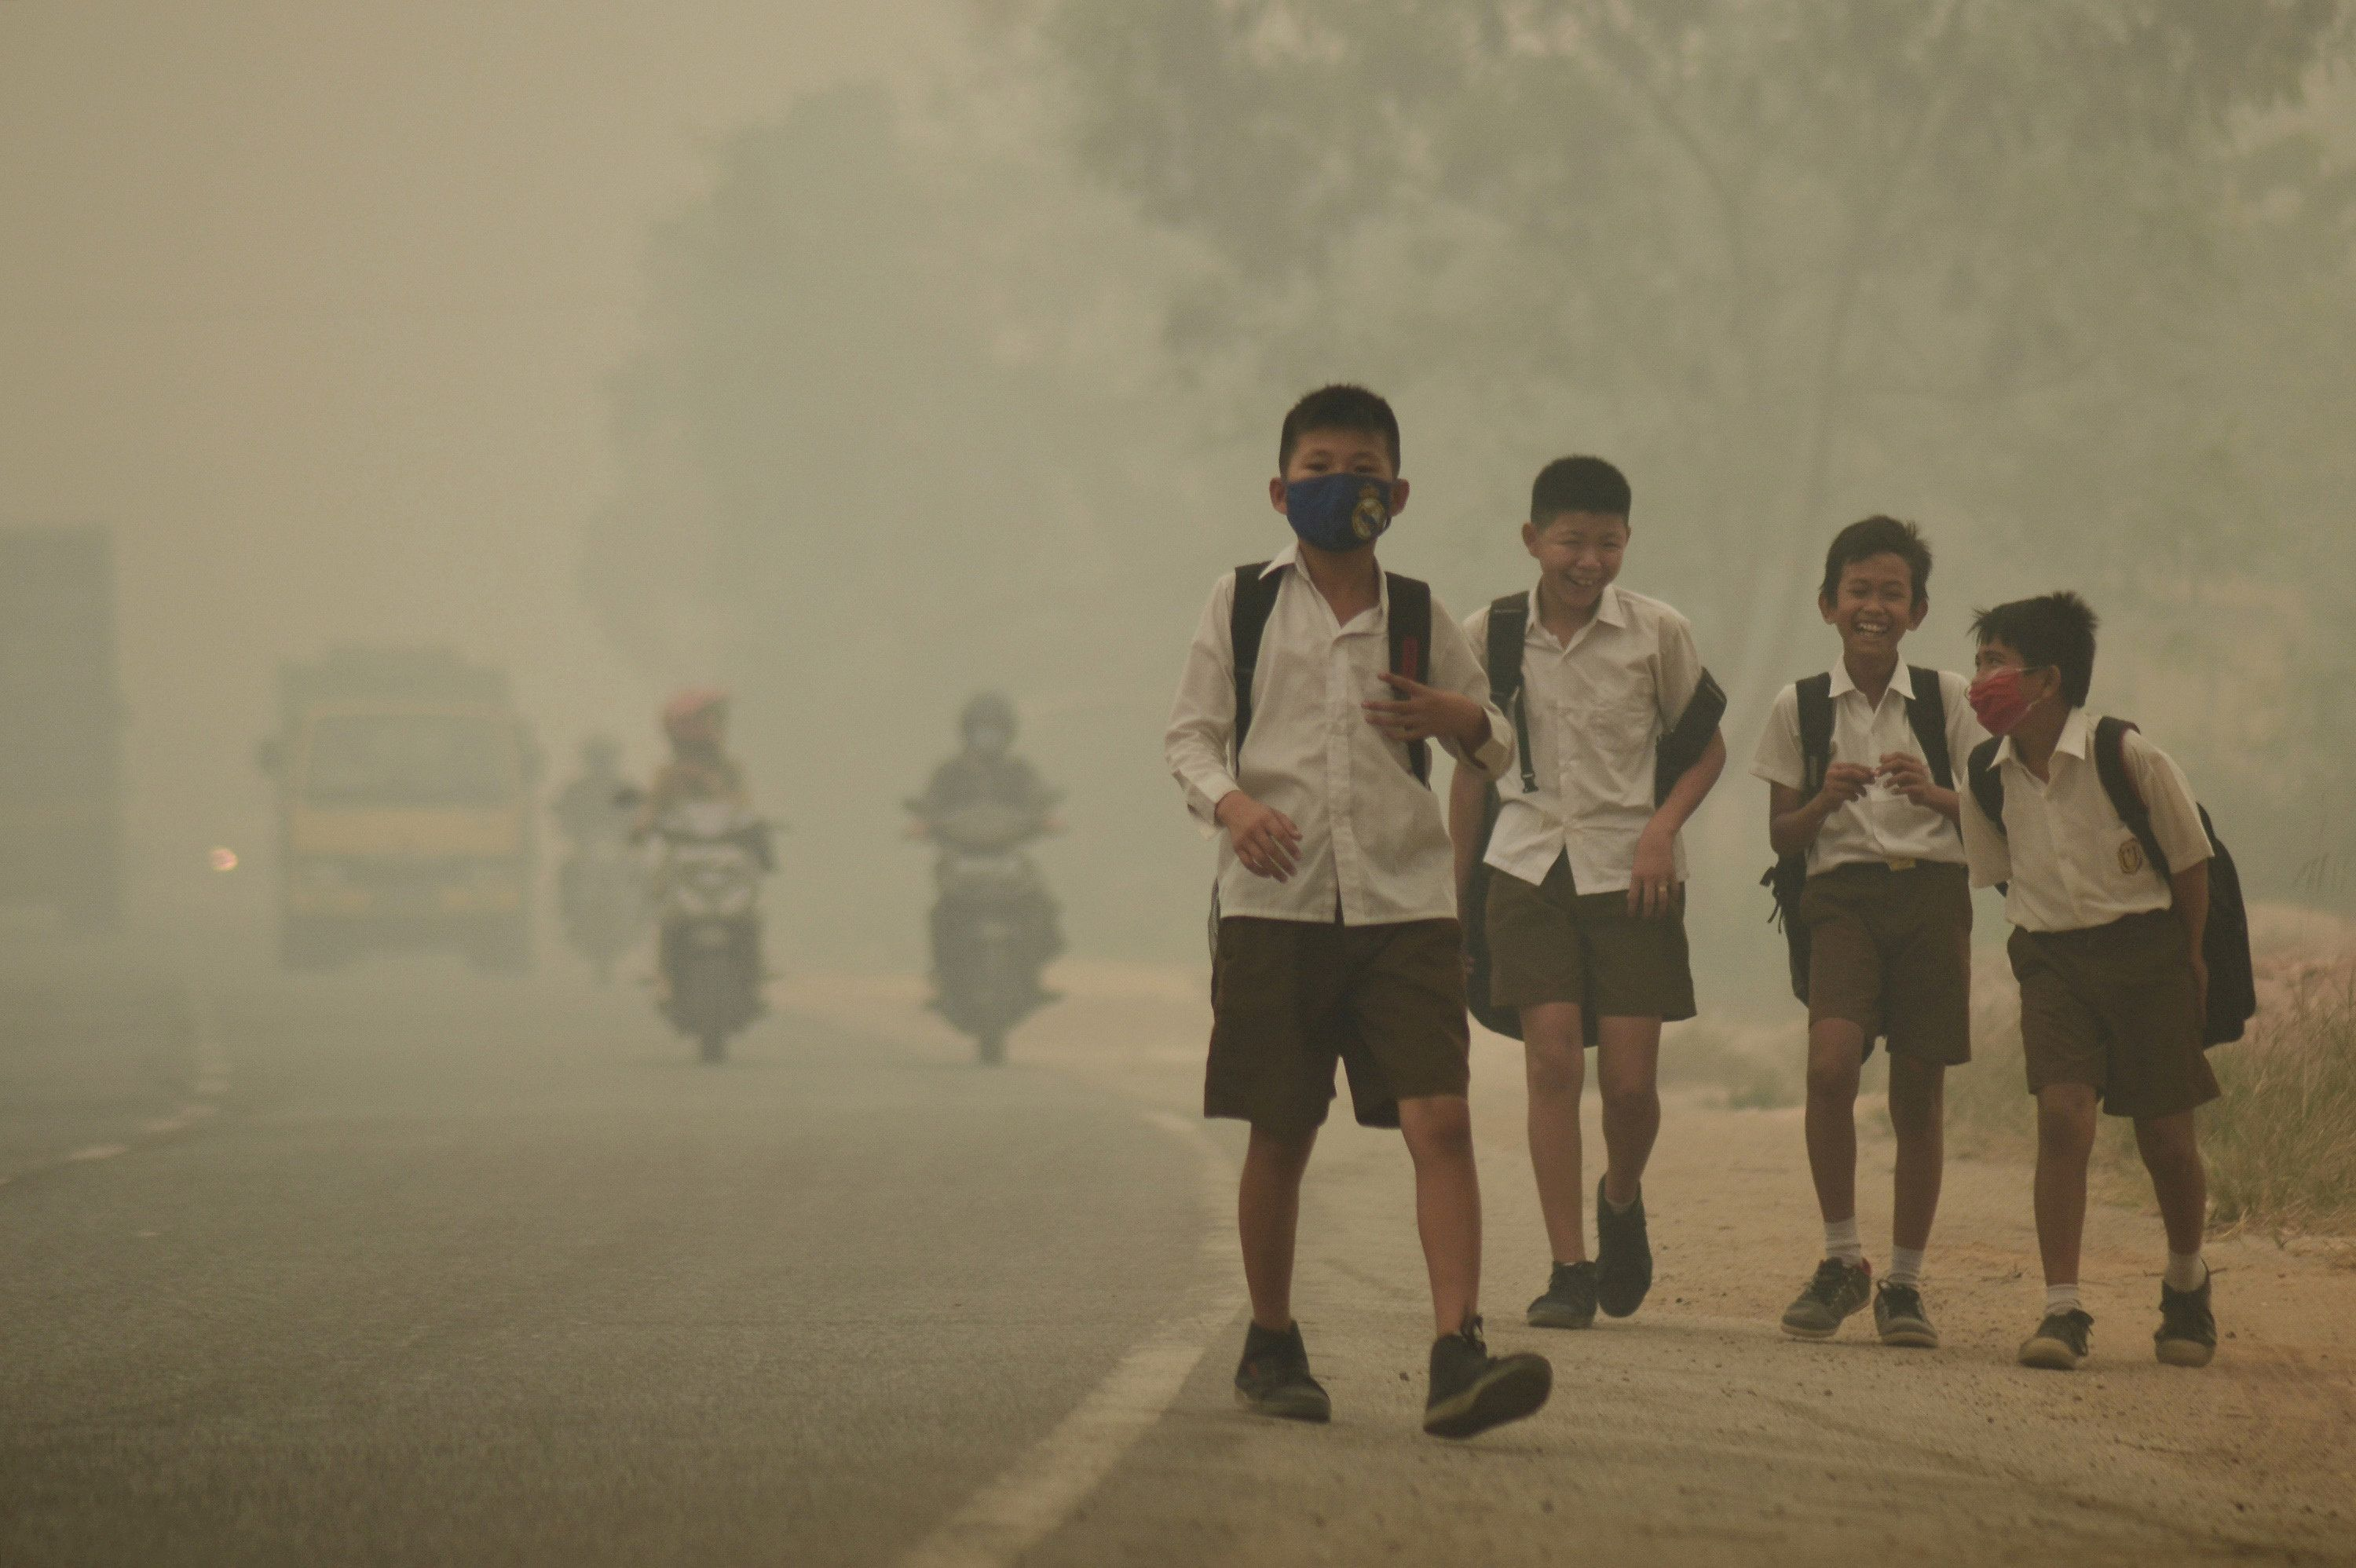 2 Billion Children Are Exposed To Poisonous Air Every